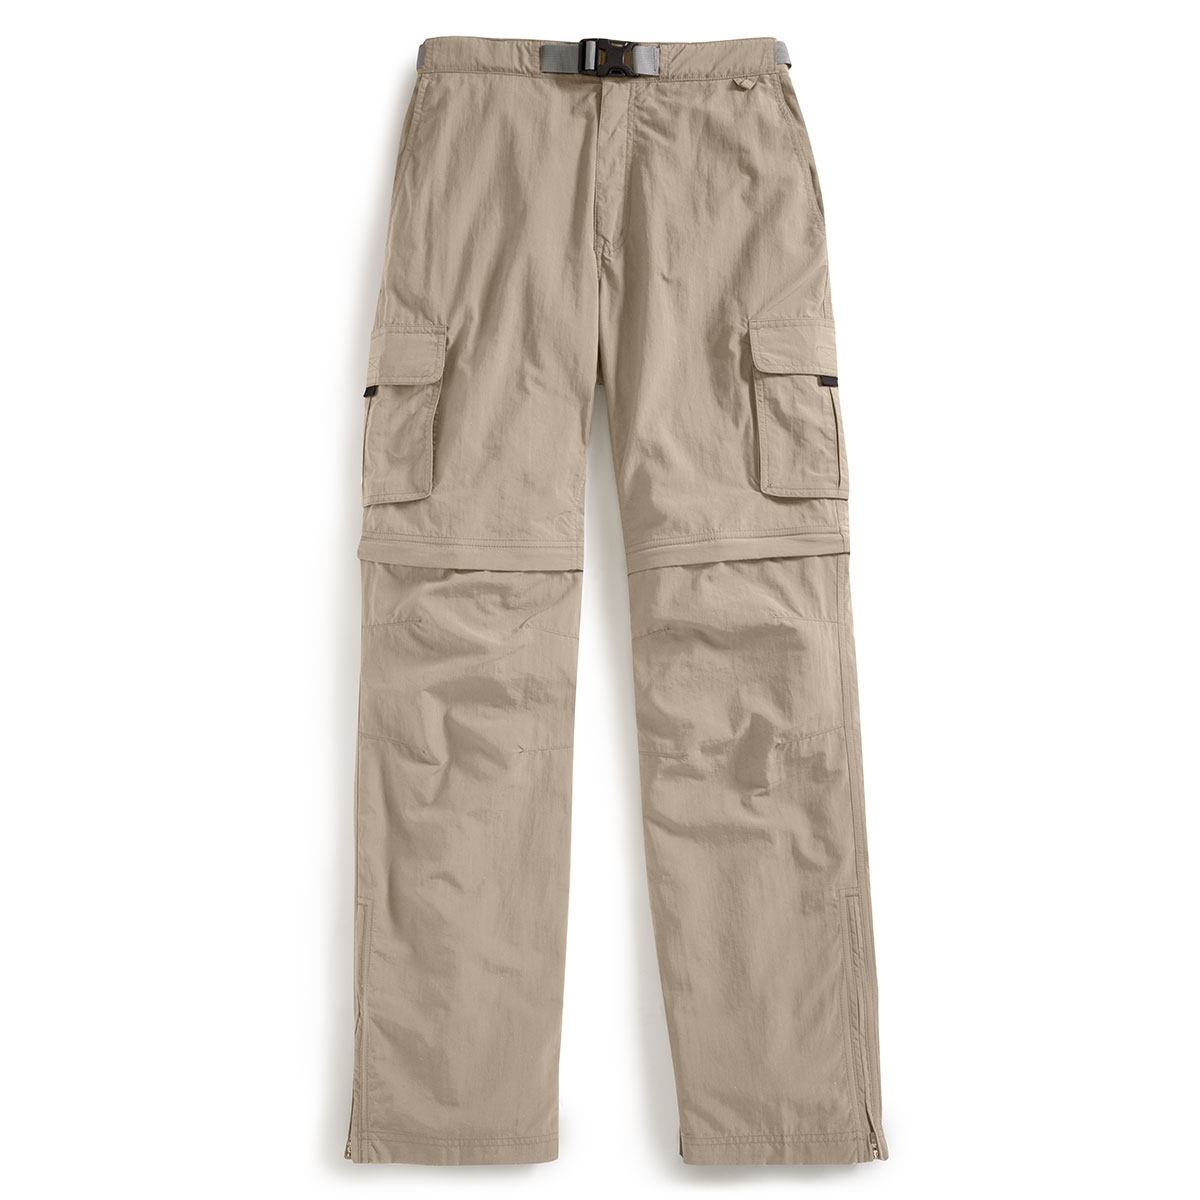 hiking pants emsu0026reg; menu0026rsquo;s camp cargo zip-off pantsu0026nbsp; ... kwixpgg